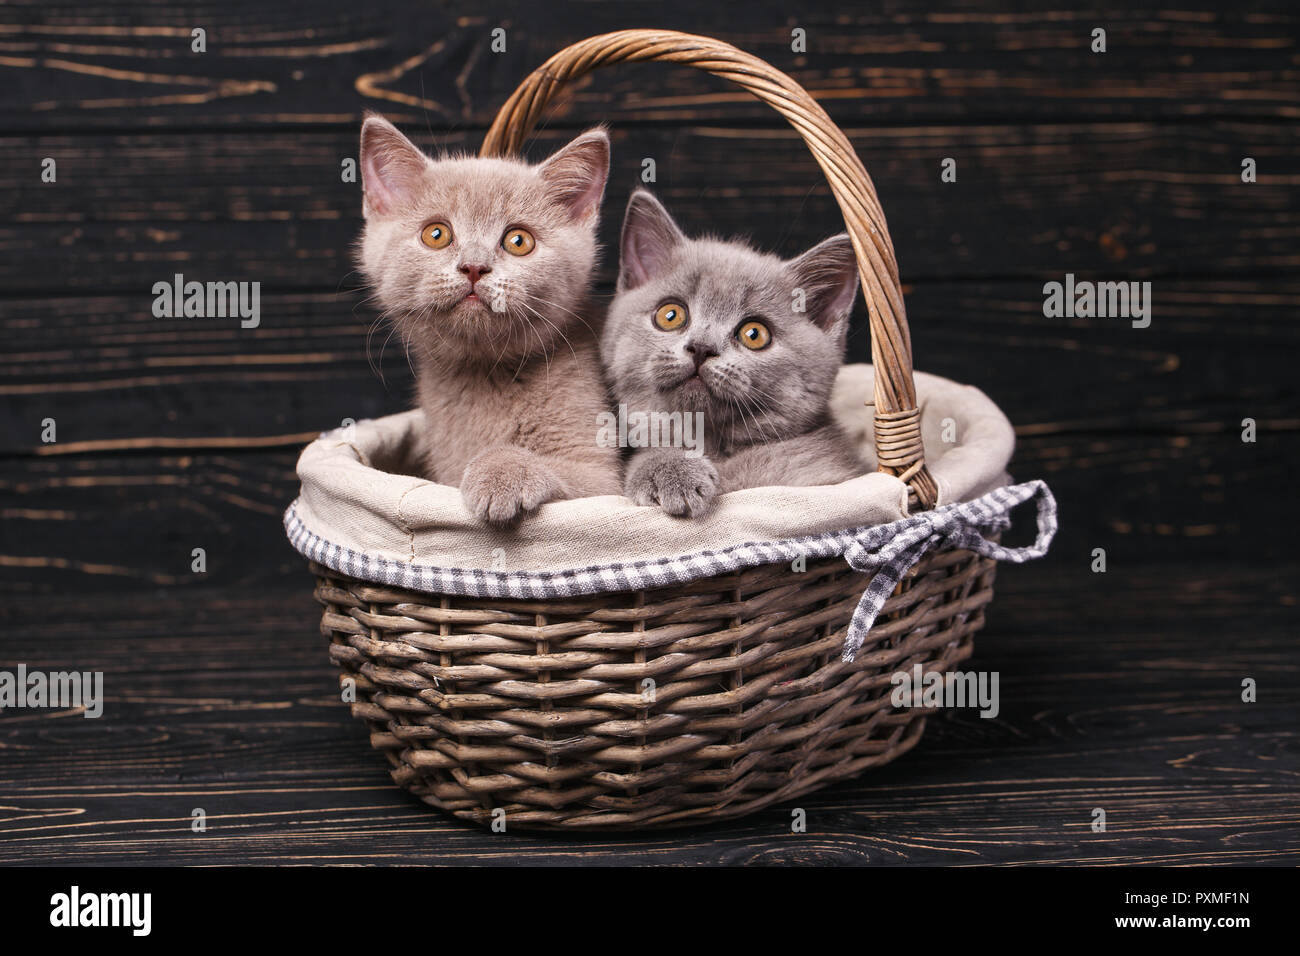 Scottish straight kittens. Two pedigree kittens in the basket. The cats put the paws on the basket. Funky kittens explore new territories. On a black  - Stock Image